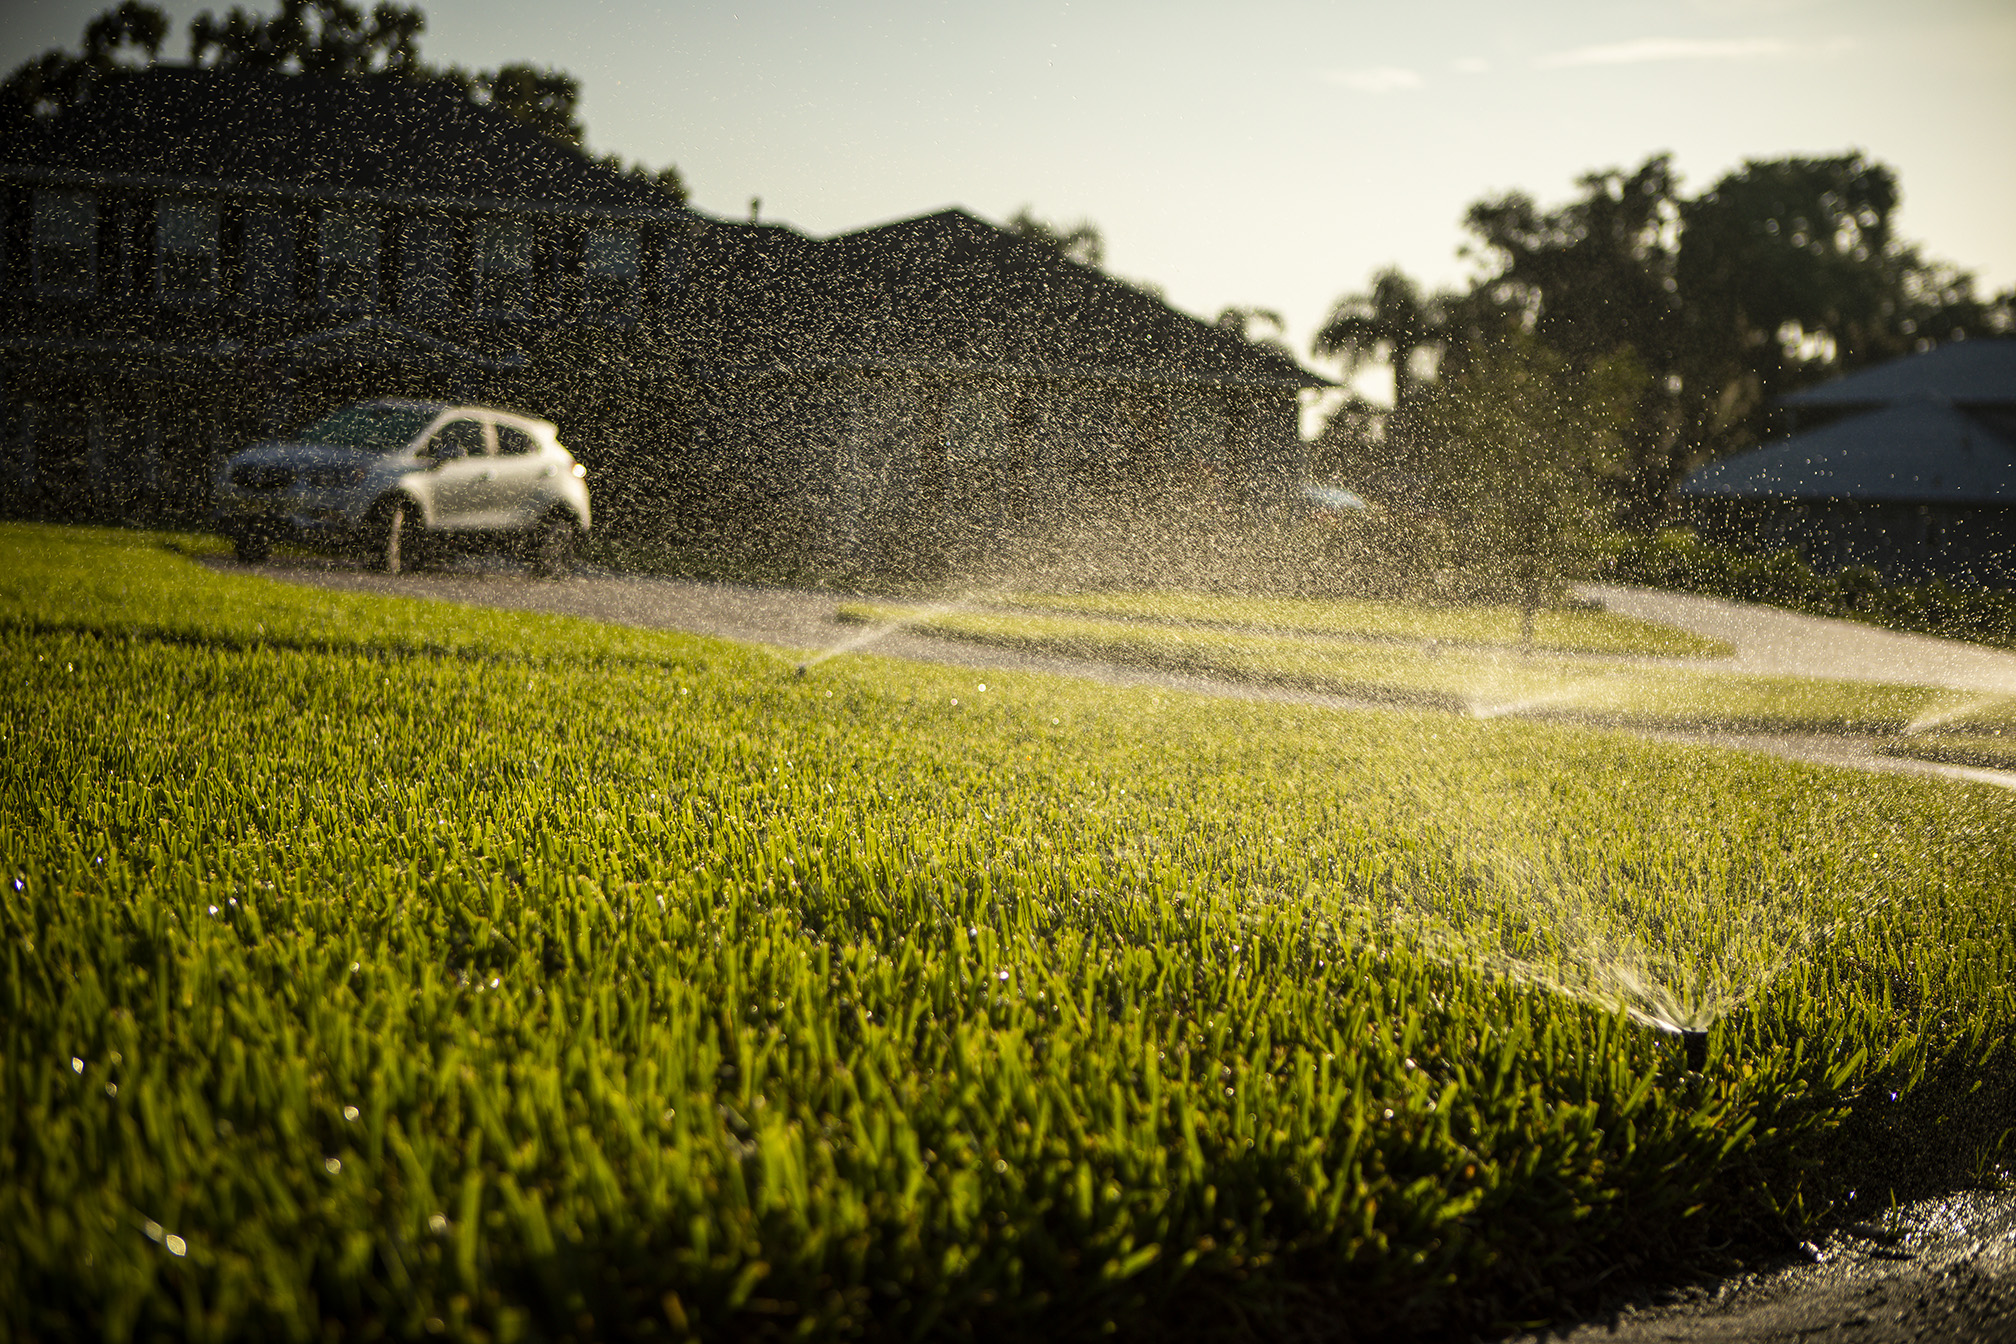 Lawn irrigation for water conservation